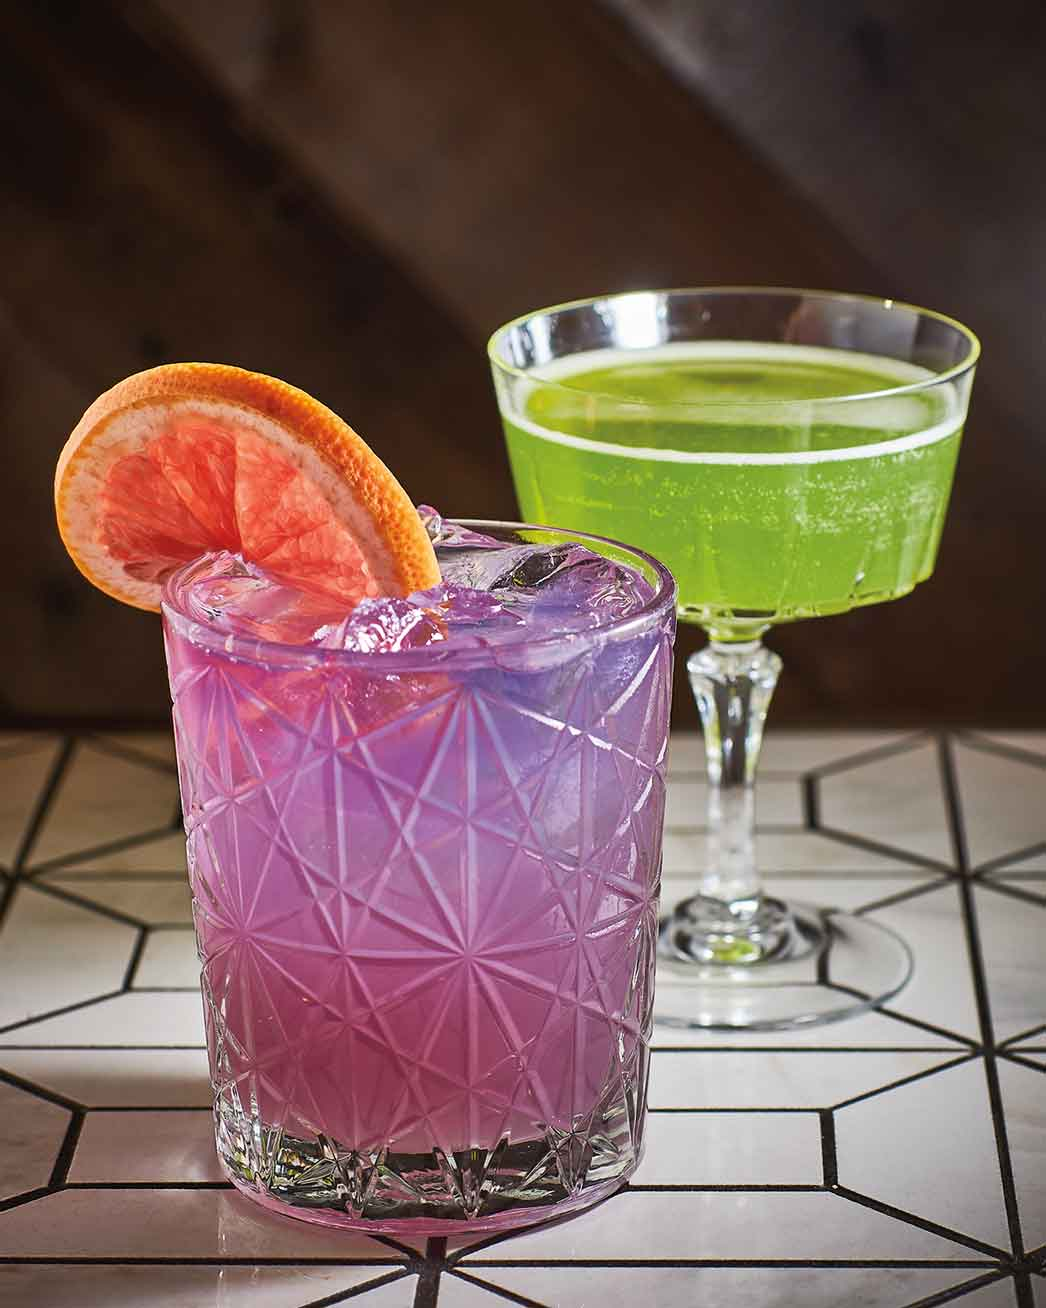 Mountain cocktails from Where the Buffalo Roam include the High Violet purple tumbler and Misty Mountain Hop. Photo by Damian Lamartine